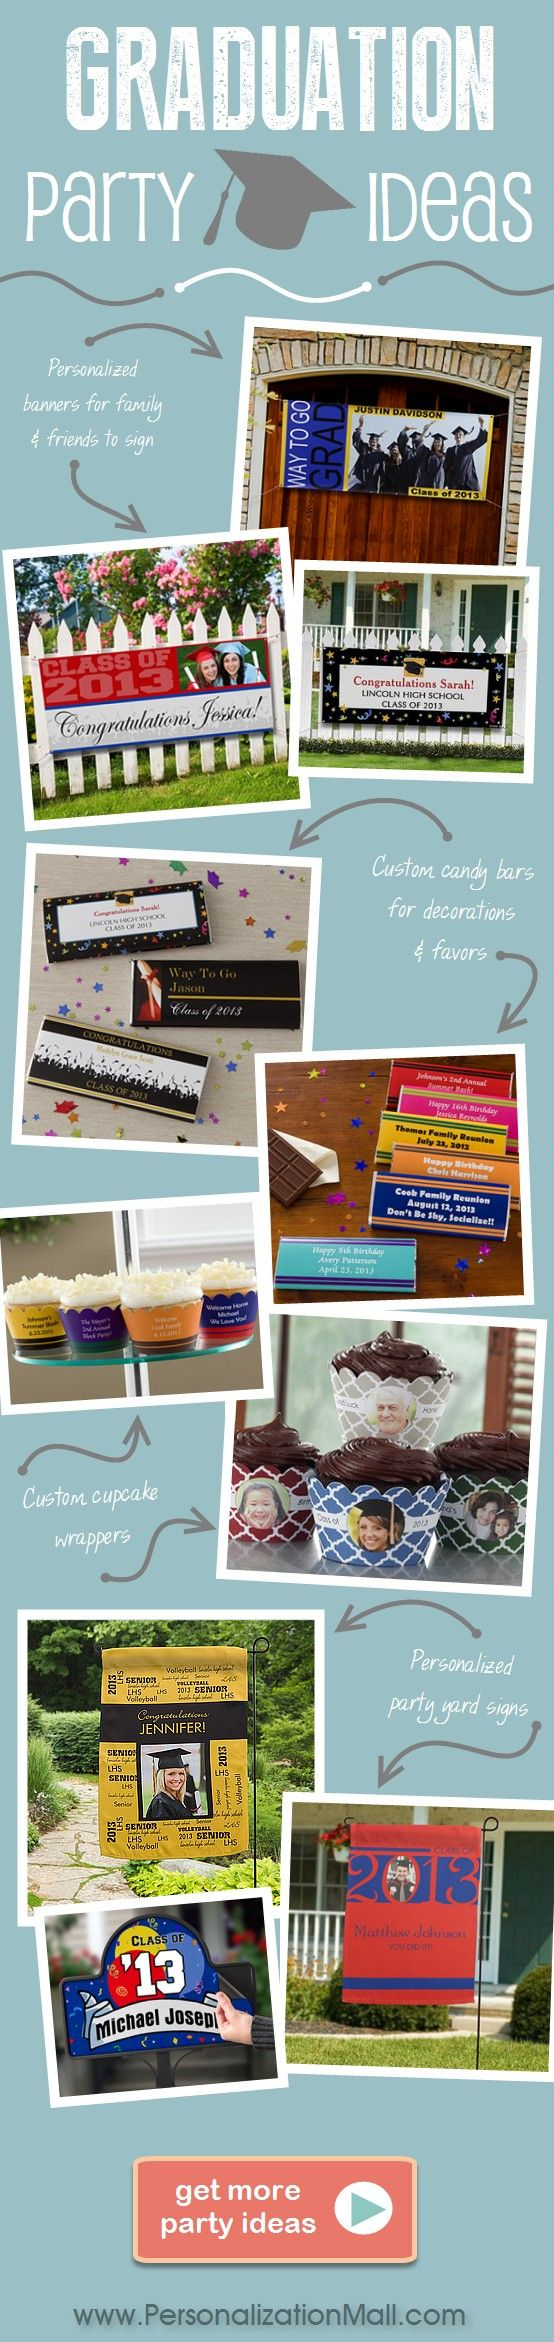 Graduation Party ideas with great ideas for graduation decorations, party favors, invites and more!